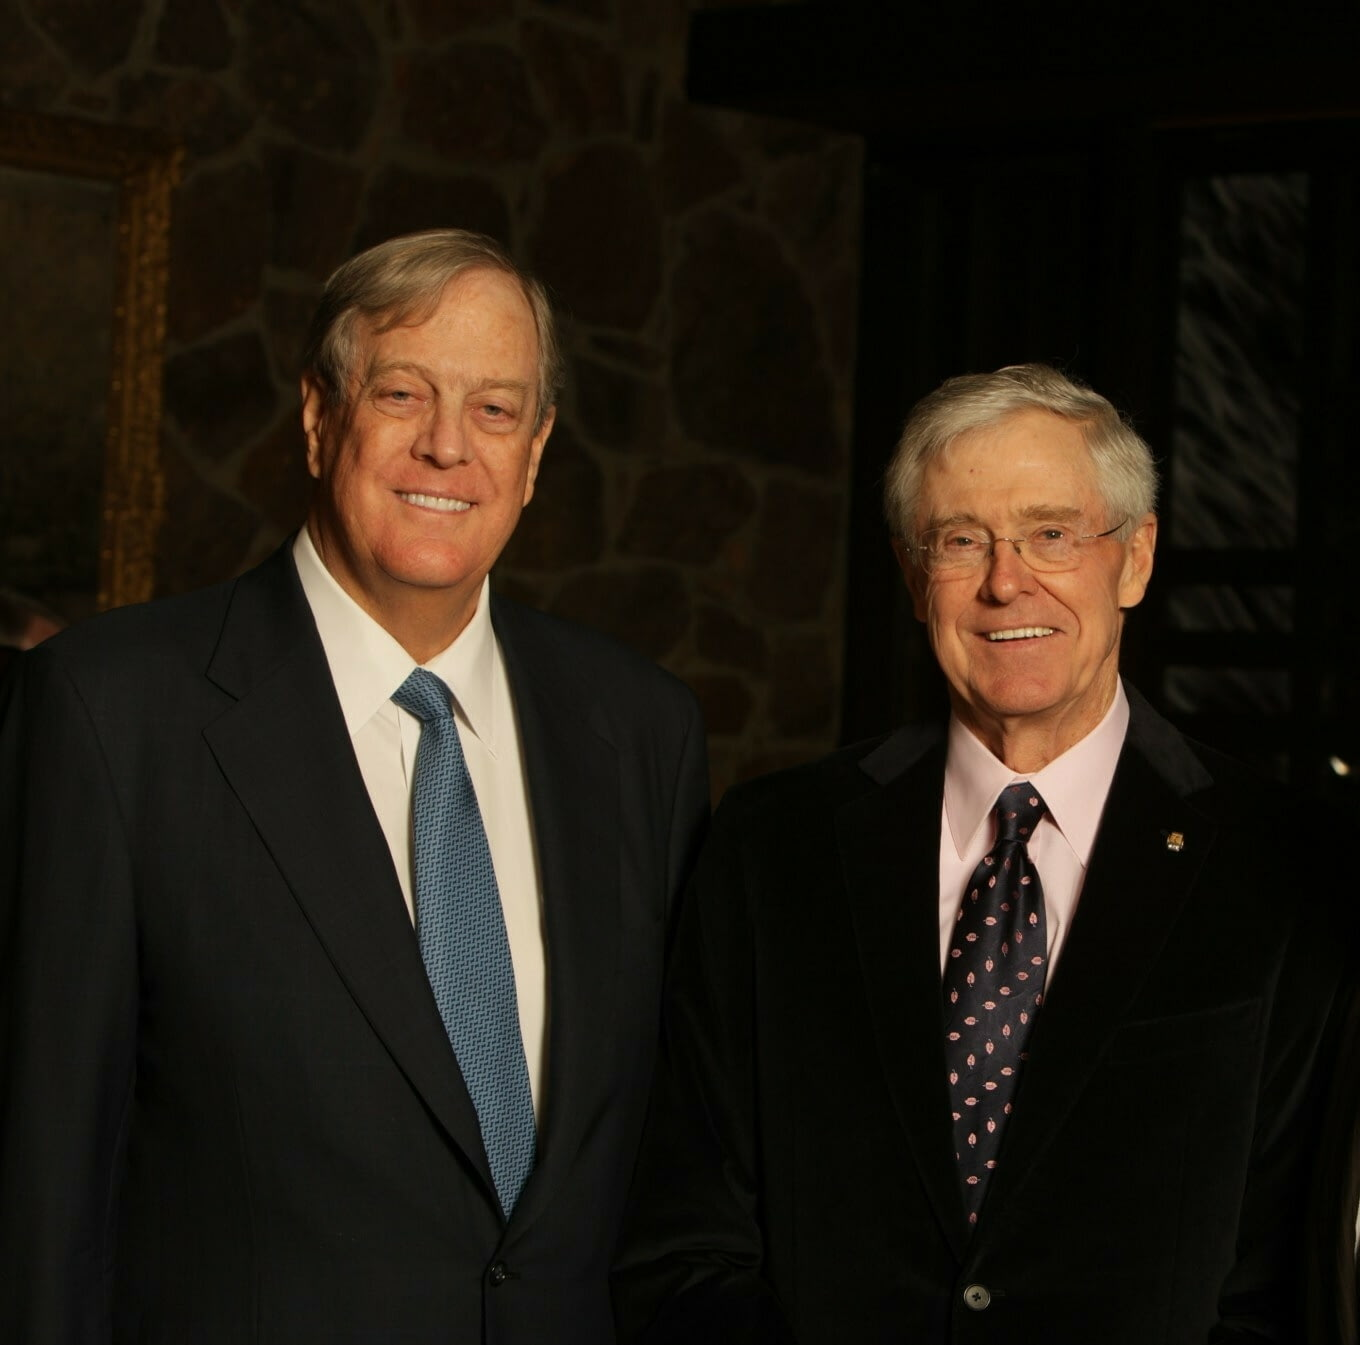 Koch Brothers Photo